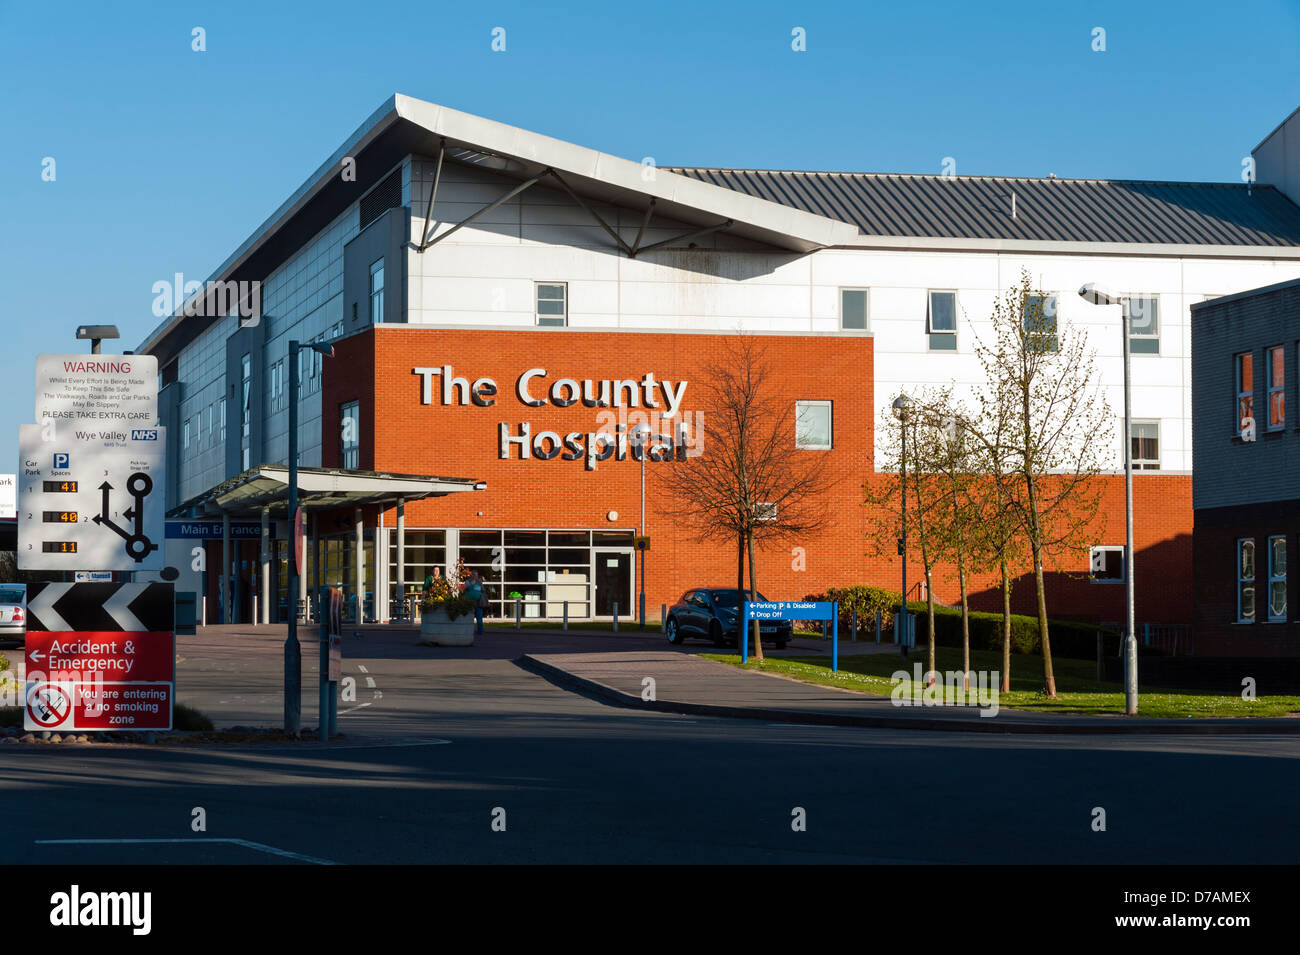 Hereford NHS Hospital. County Hospital serving Herefordshire, UK. - Stock Image